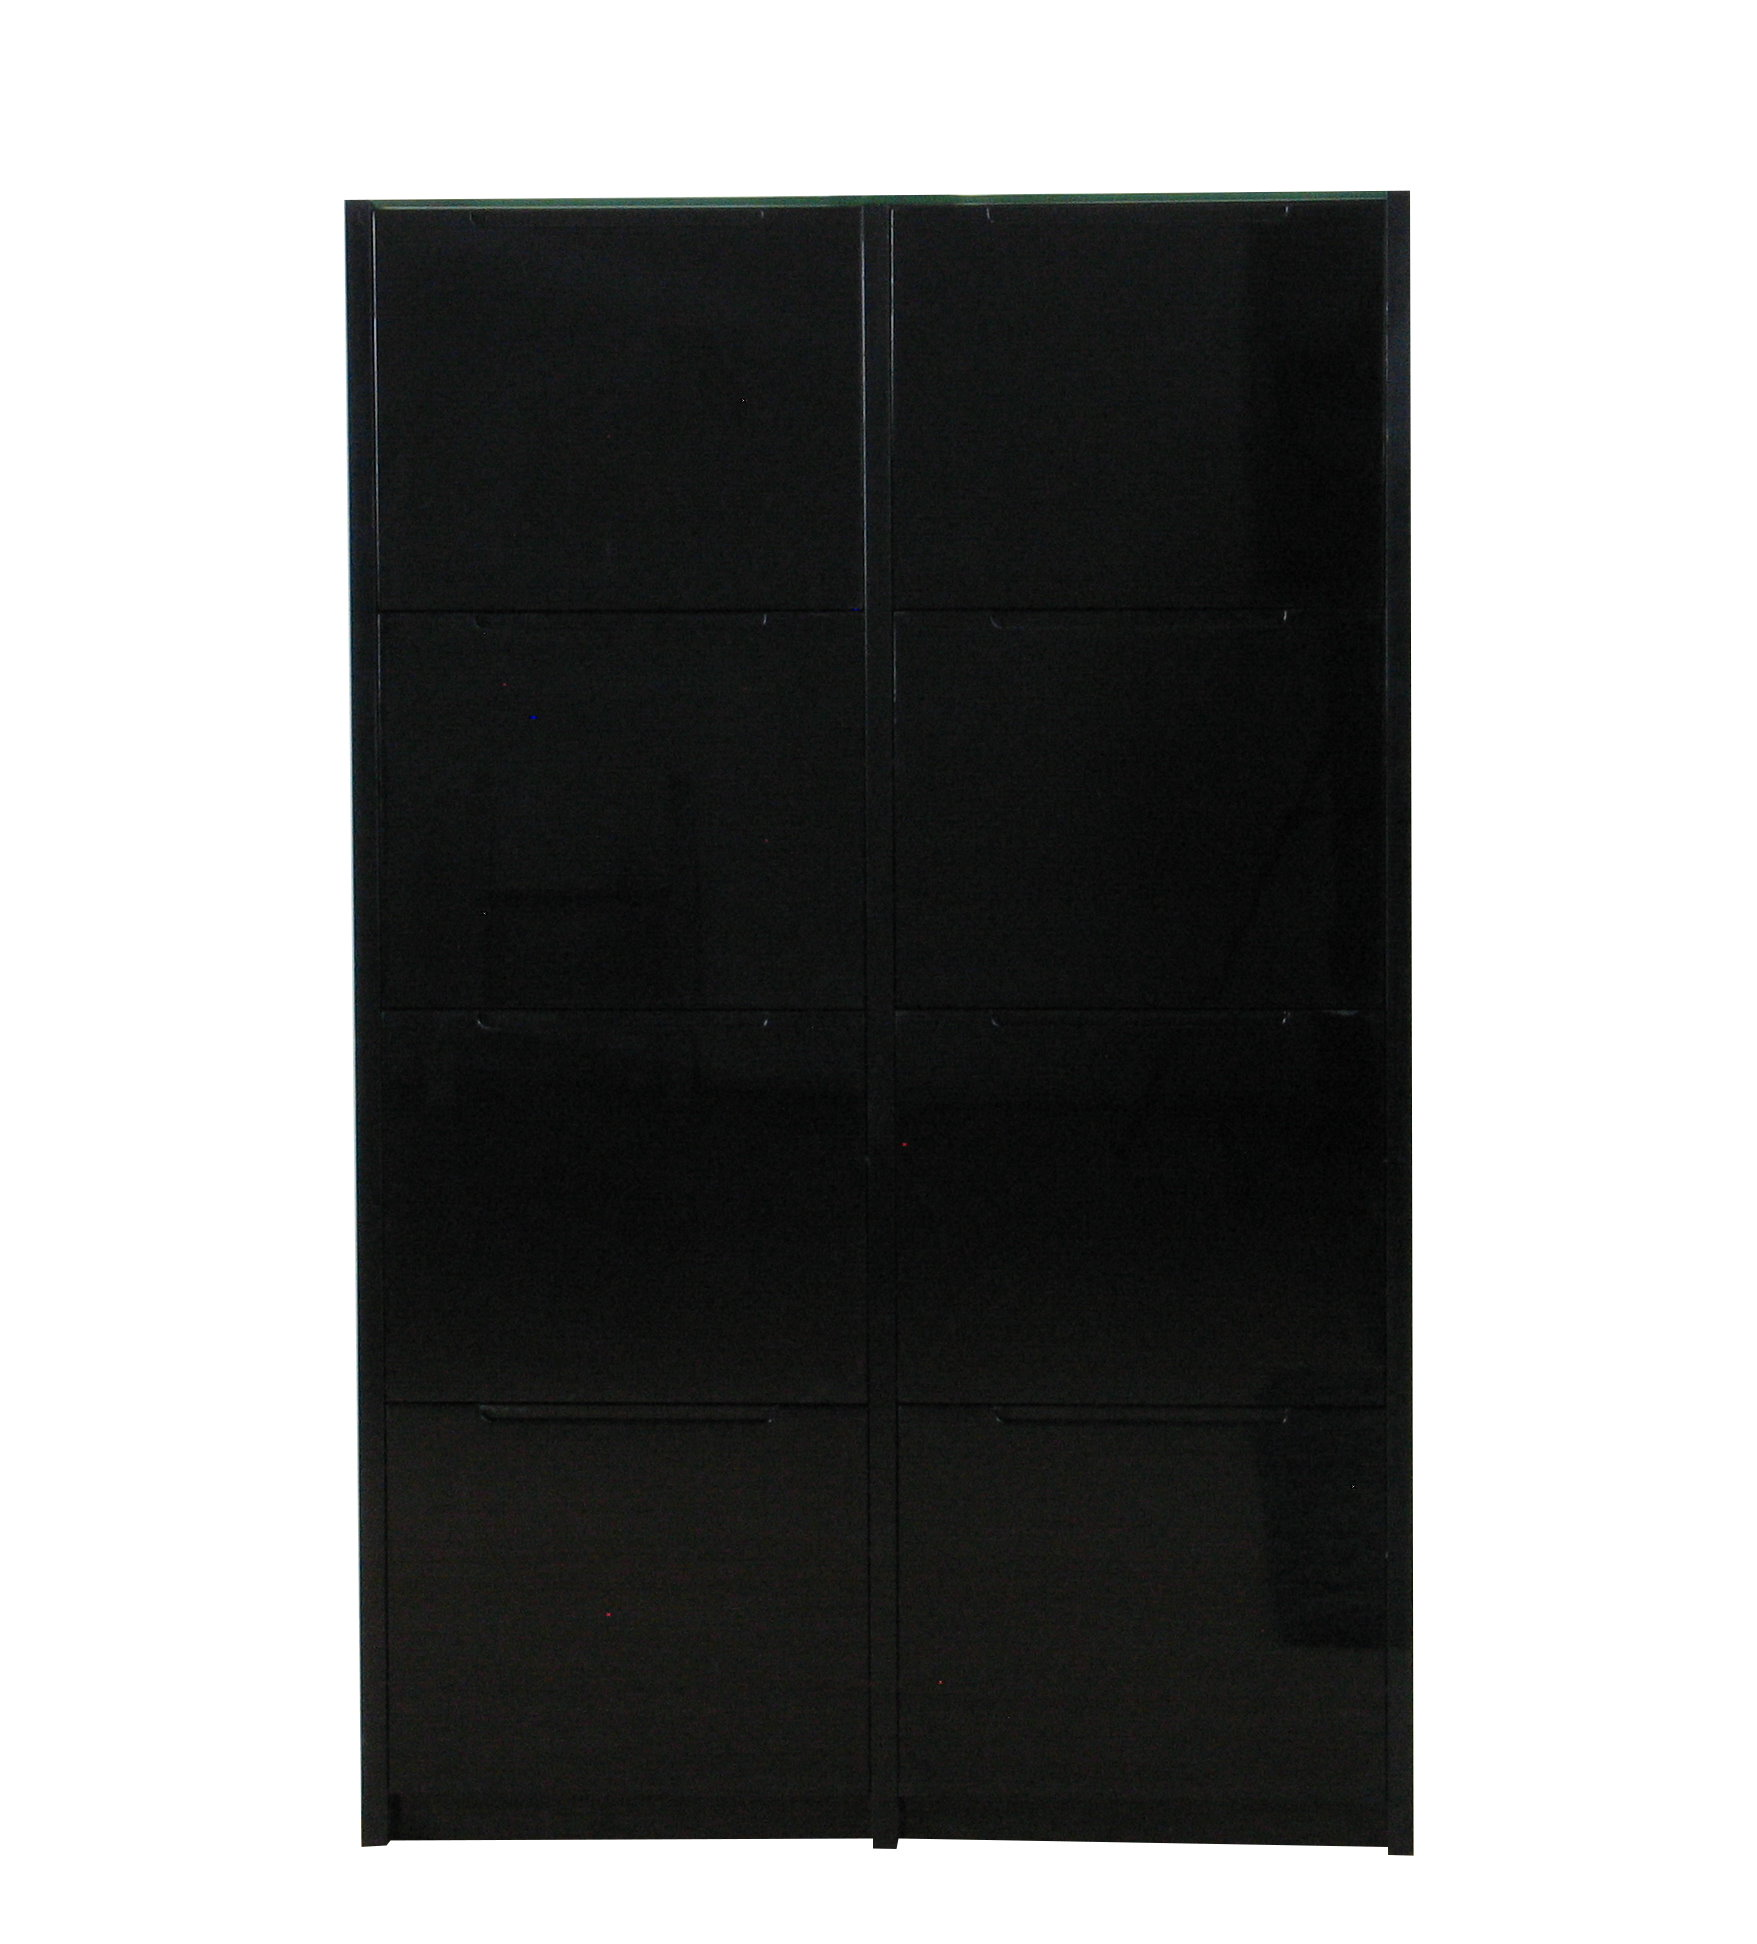 schuhschrank berlin schuhkipper schuhregal flur dielen schrank schwarz hochglanz kaufen bei. Black Bedroom Furniture Sets. Home Design Ideas